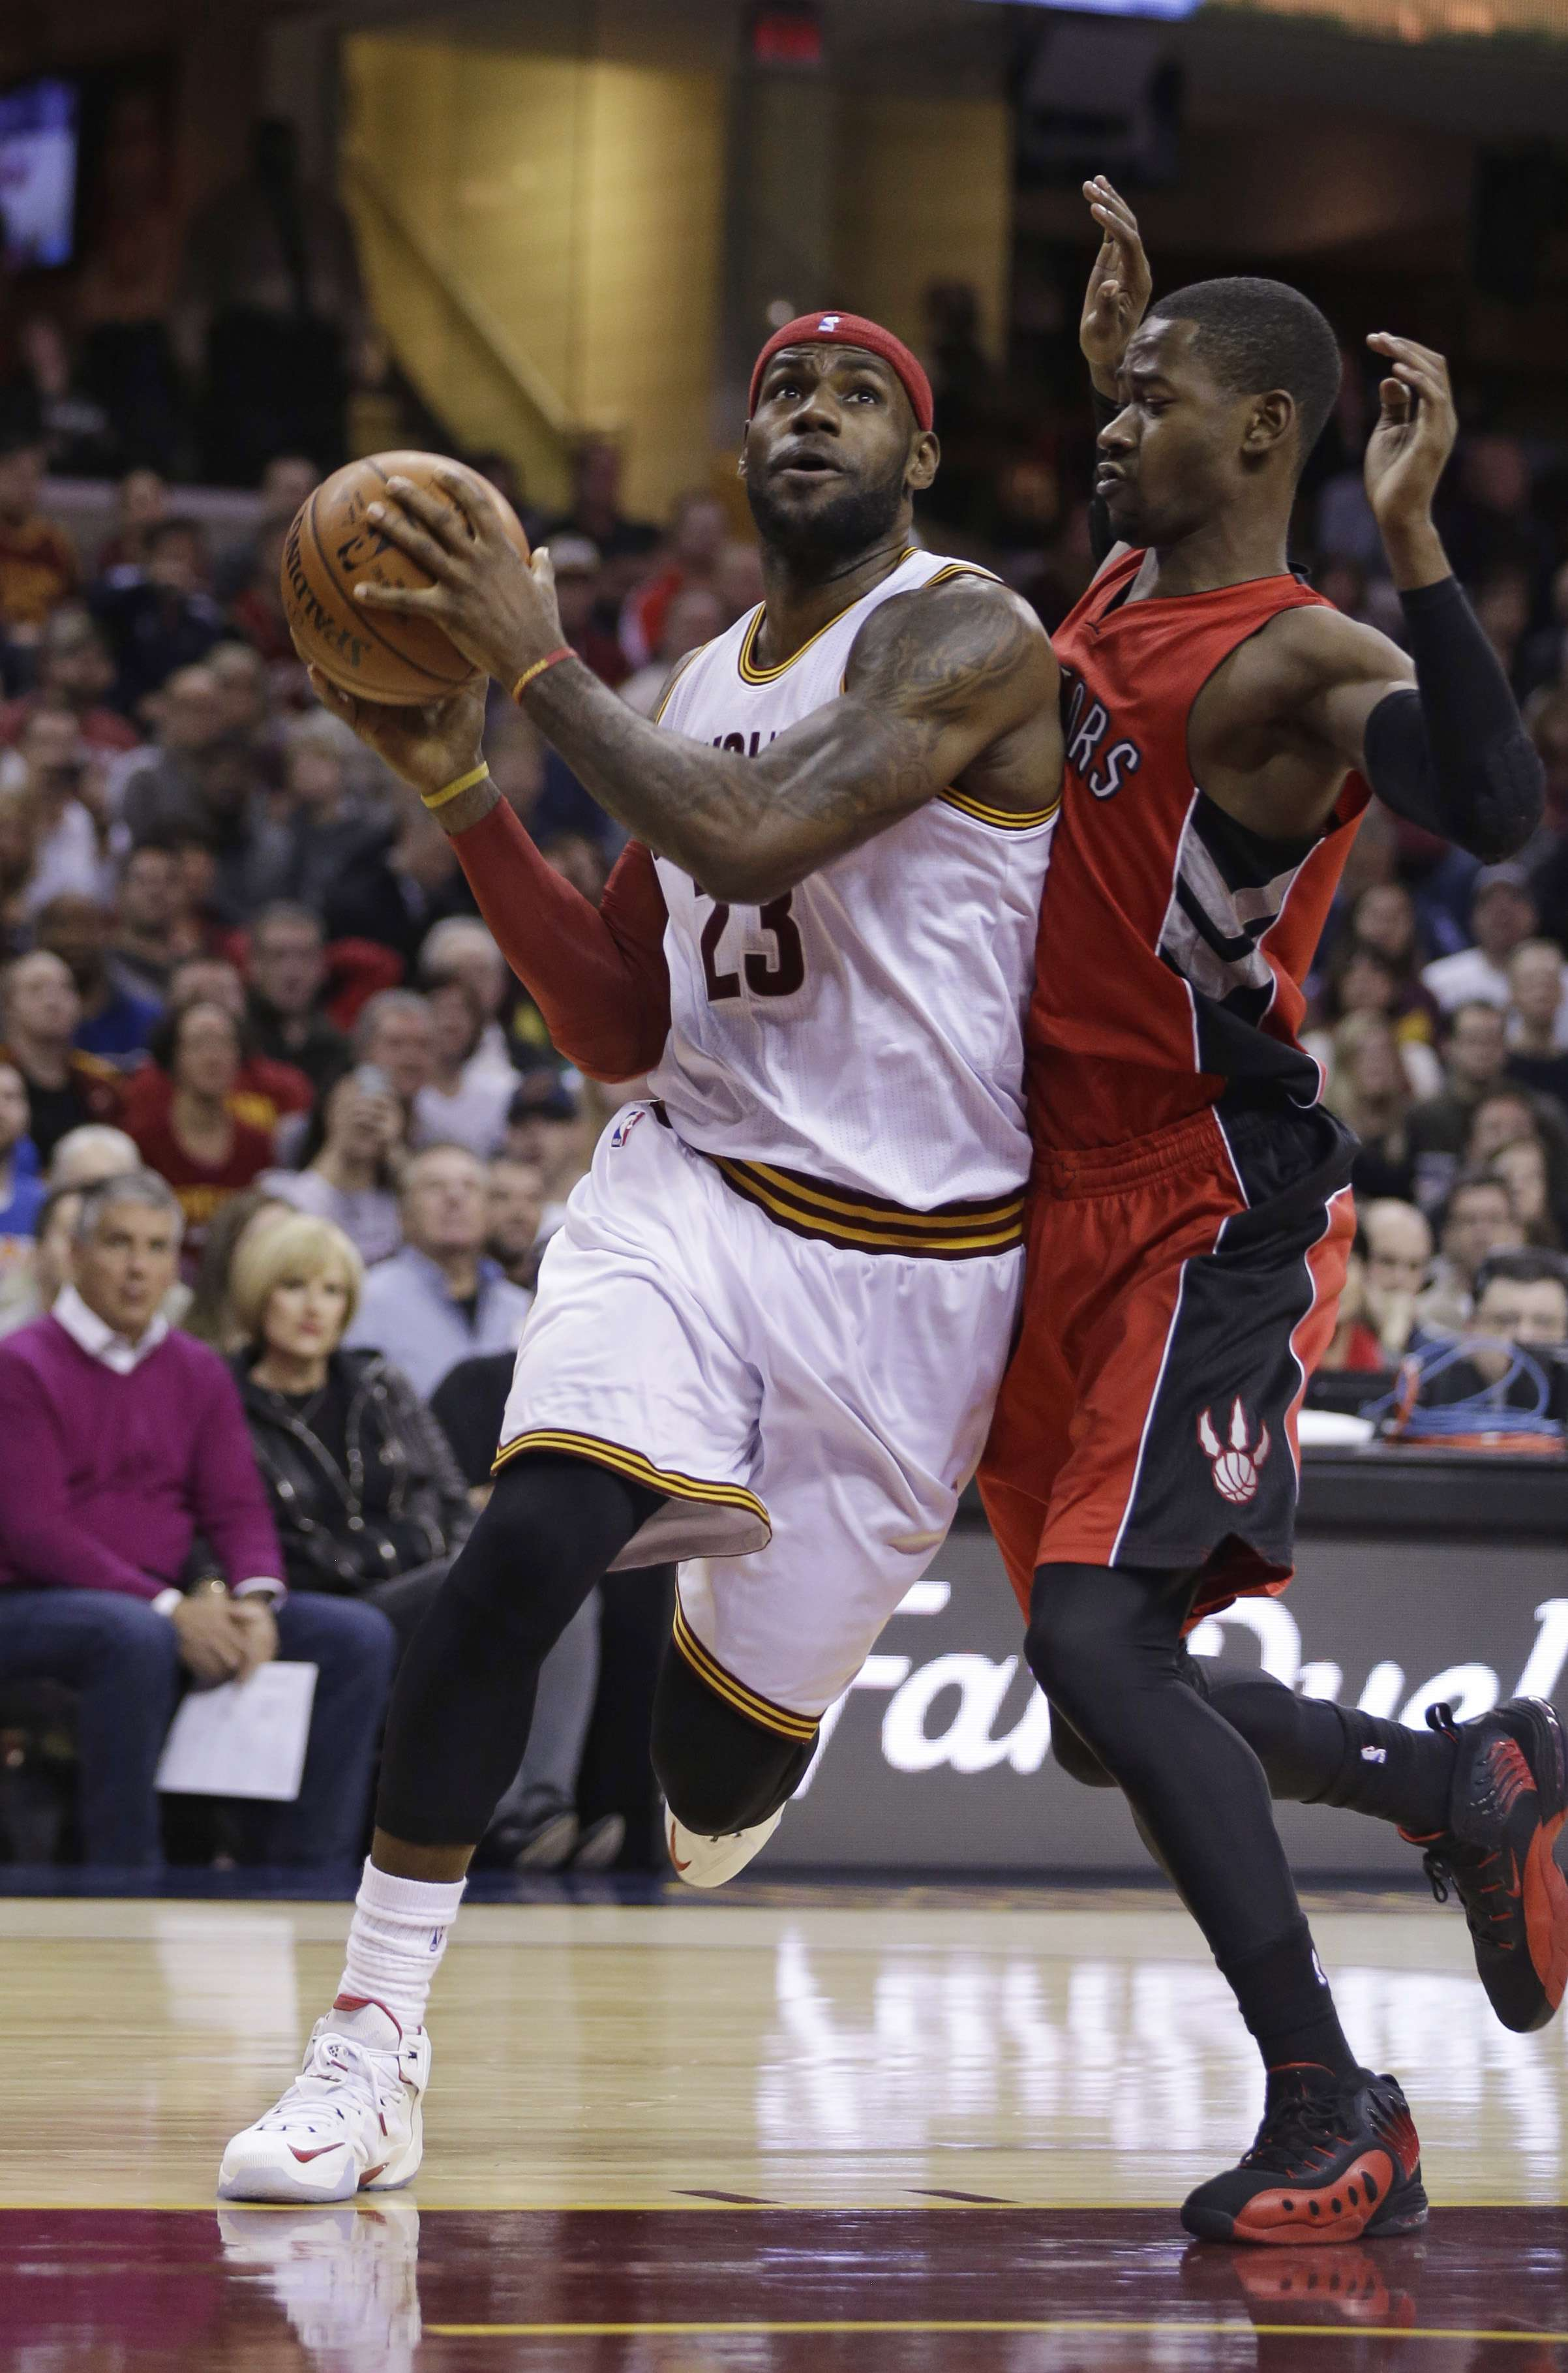 James sigue sin poder brillar en su regreso a Cleveland. Foto: AP